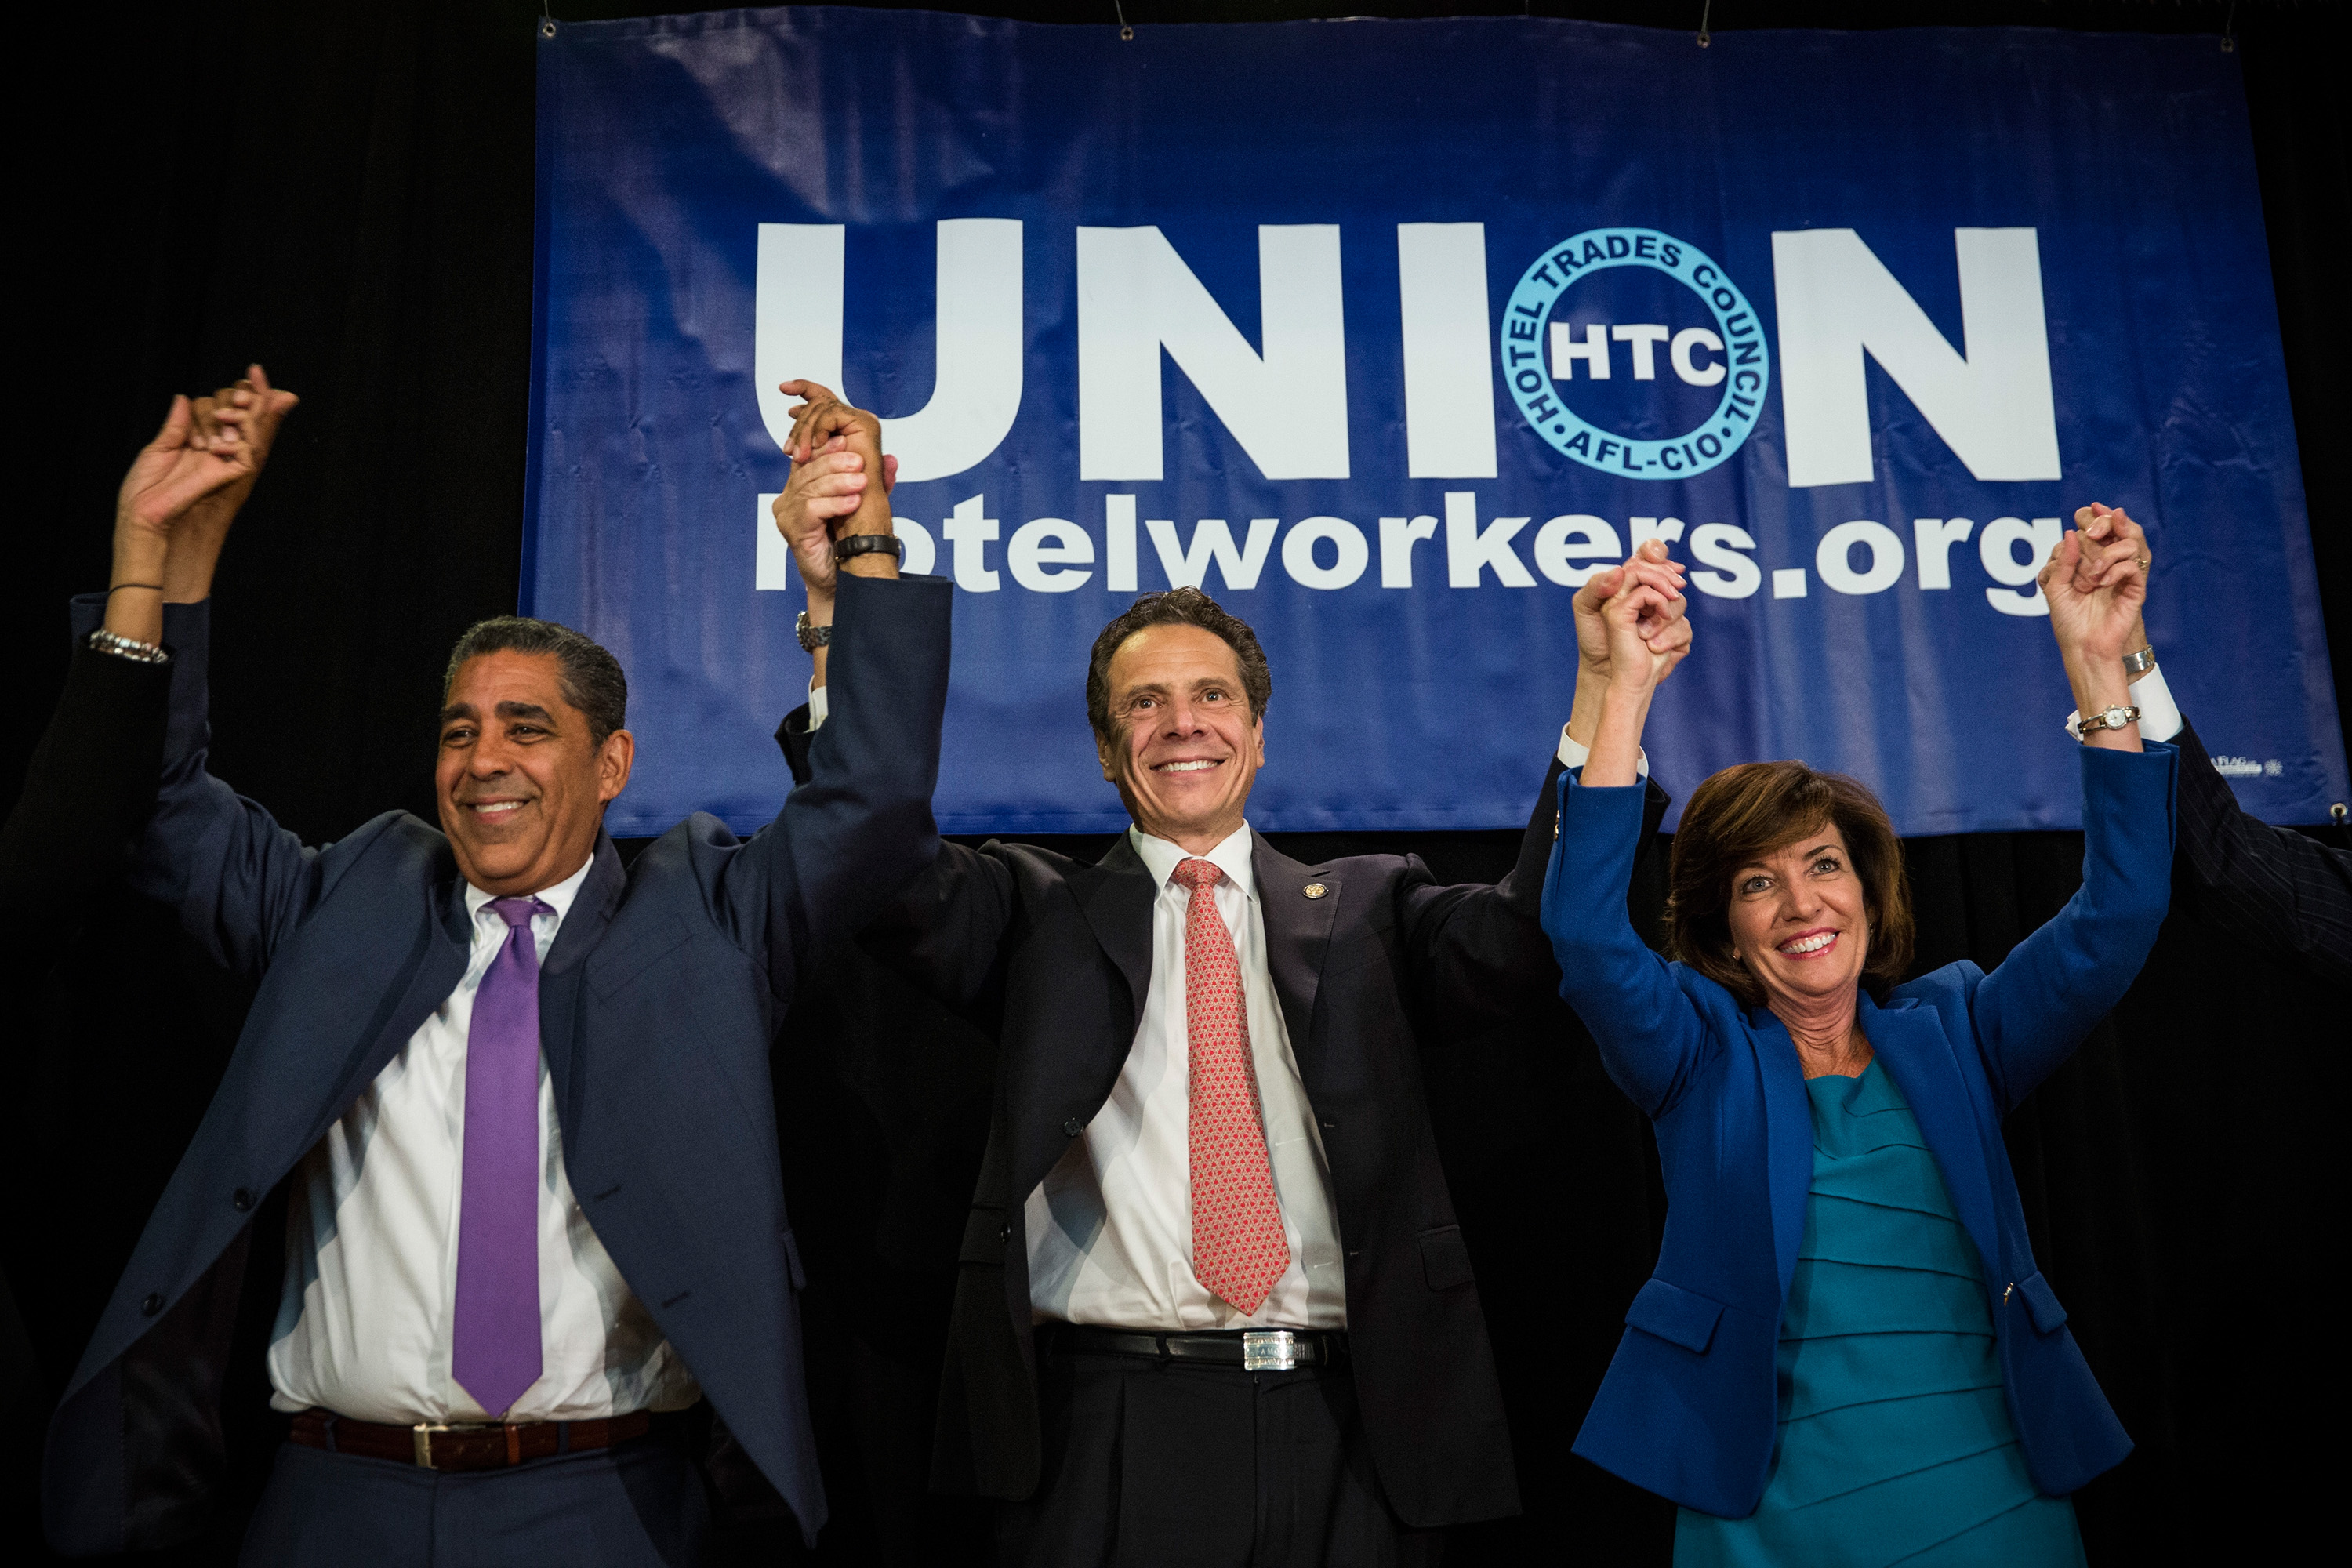 New York Governor Andrew Cuomo (C), his choice for Lieutenant Governor, former congresswoman Kathy Hochul (R) and New York State Senator Adriano Espaillat campaign together at the Hotel Trade Council during a reelection campaign event on September 8, 2014 in New York City.